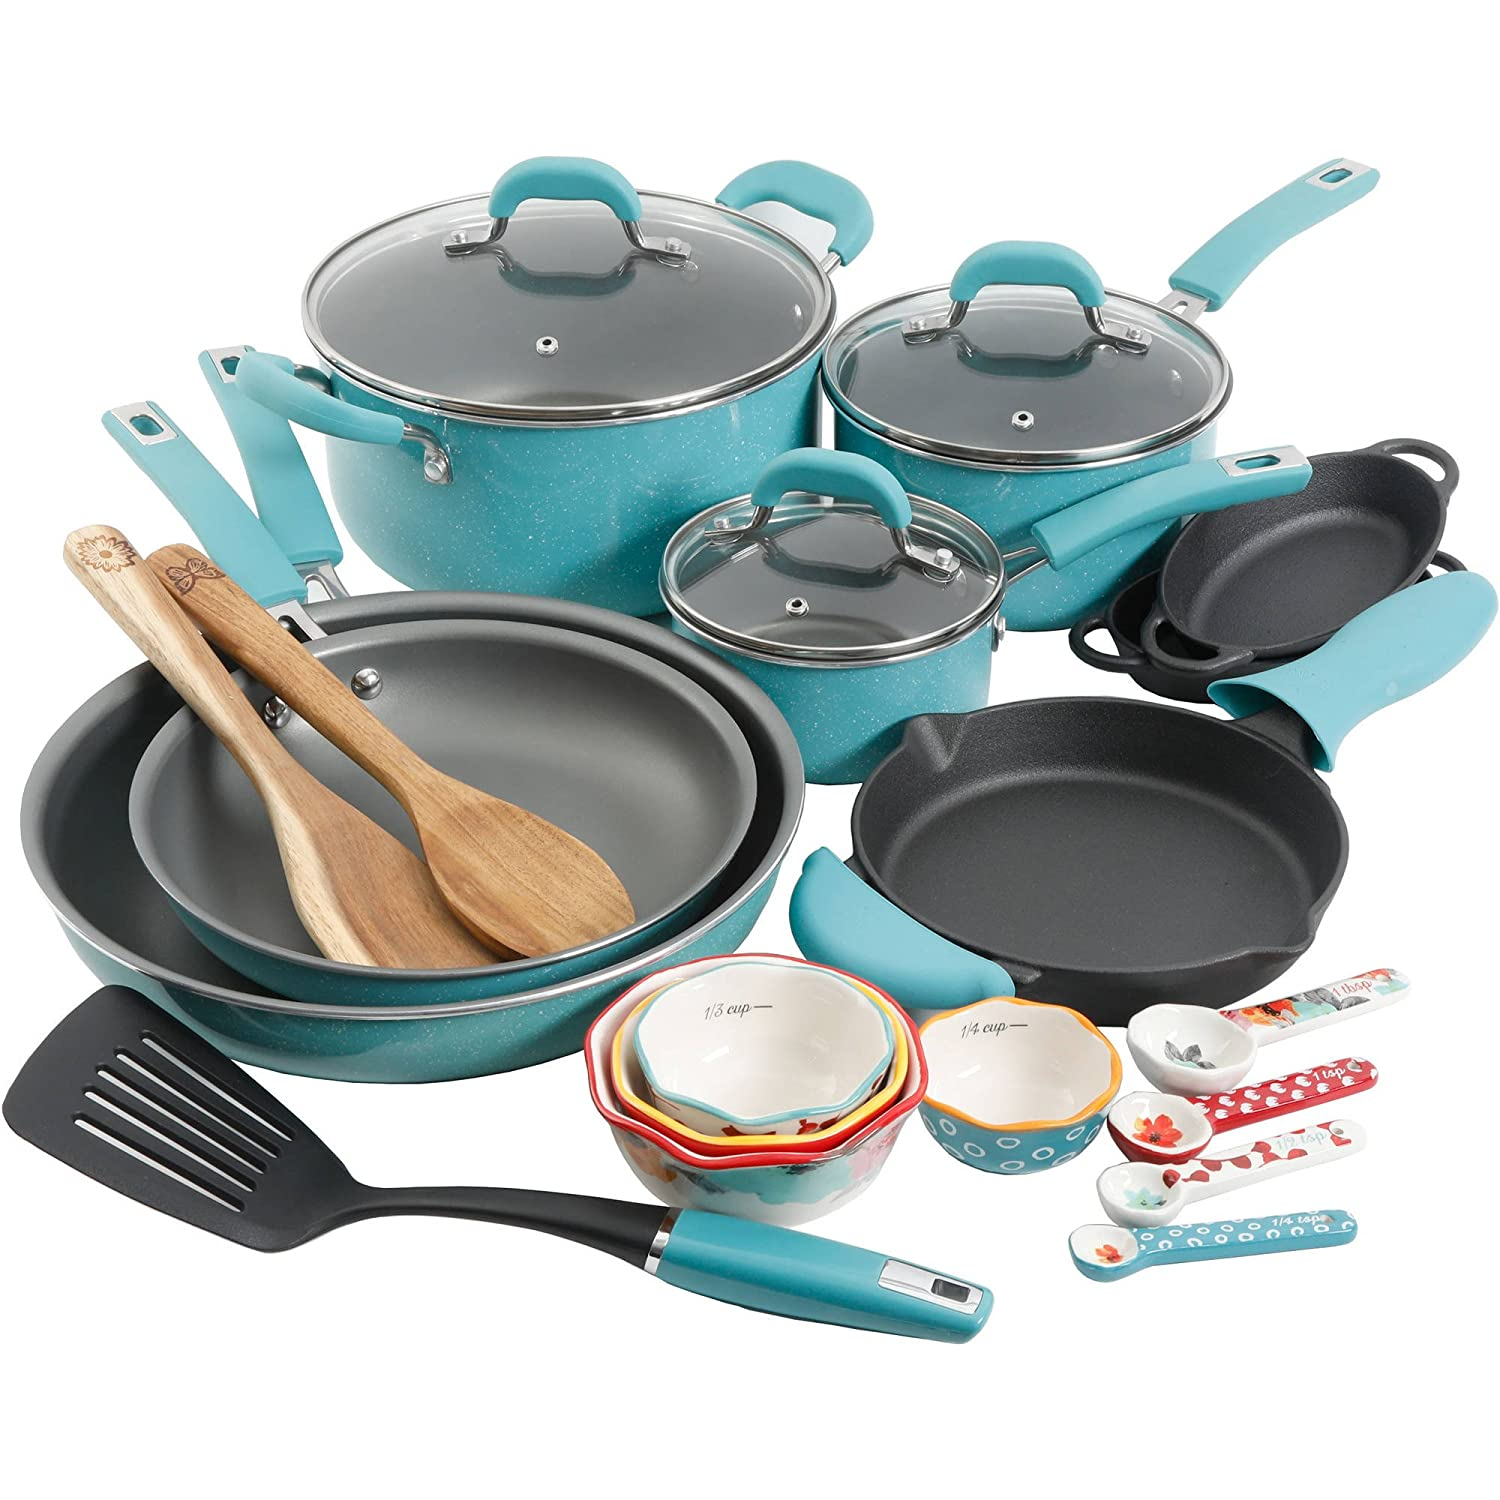 The Pioneer Woman Vintage Speckle Cookware Combo Set 24 Piece Turquoise